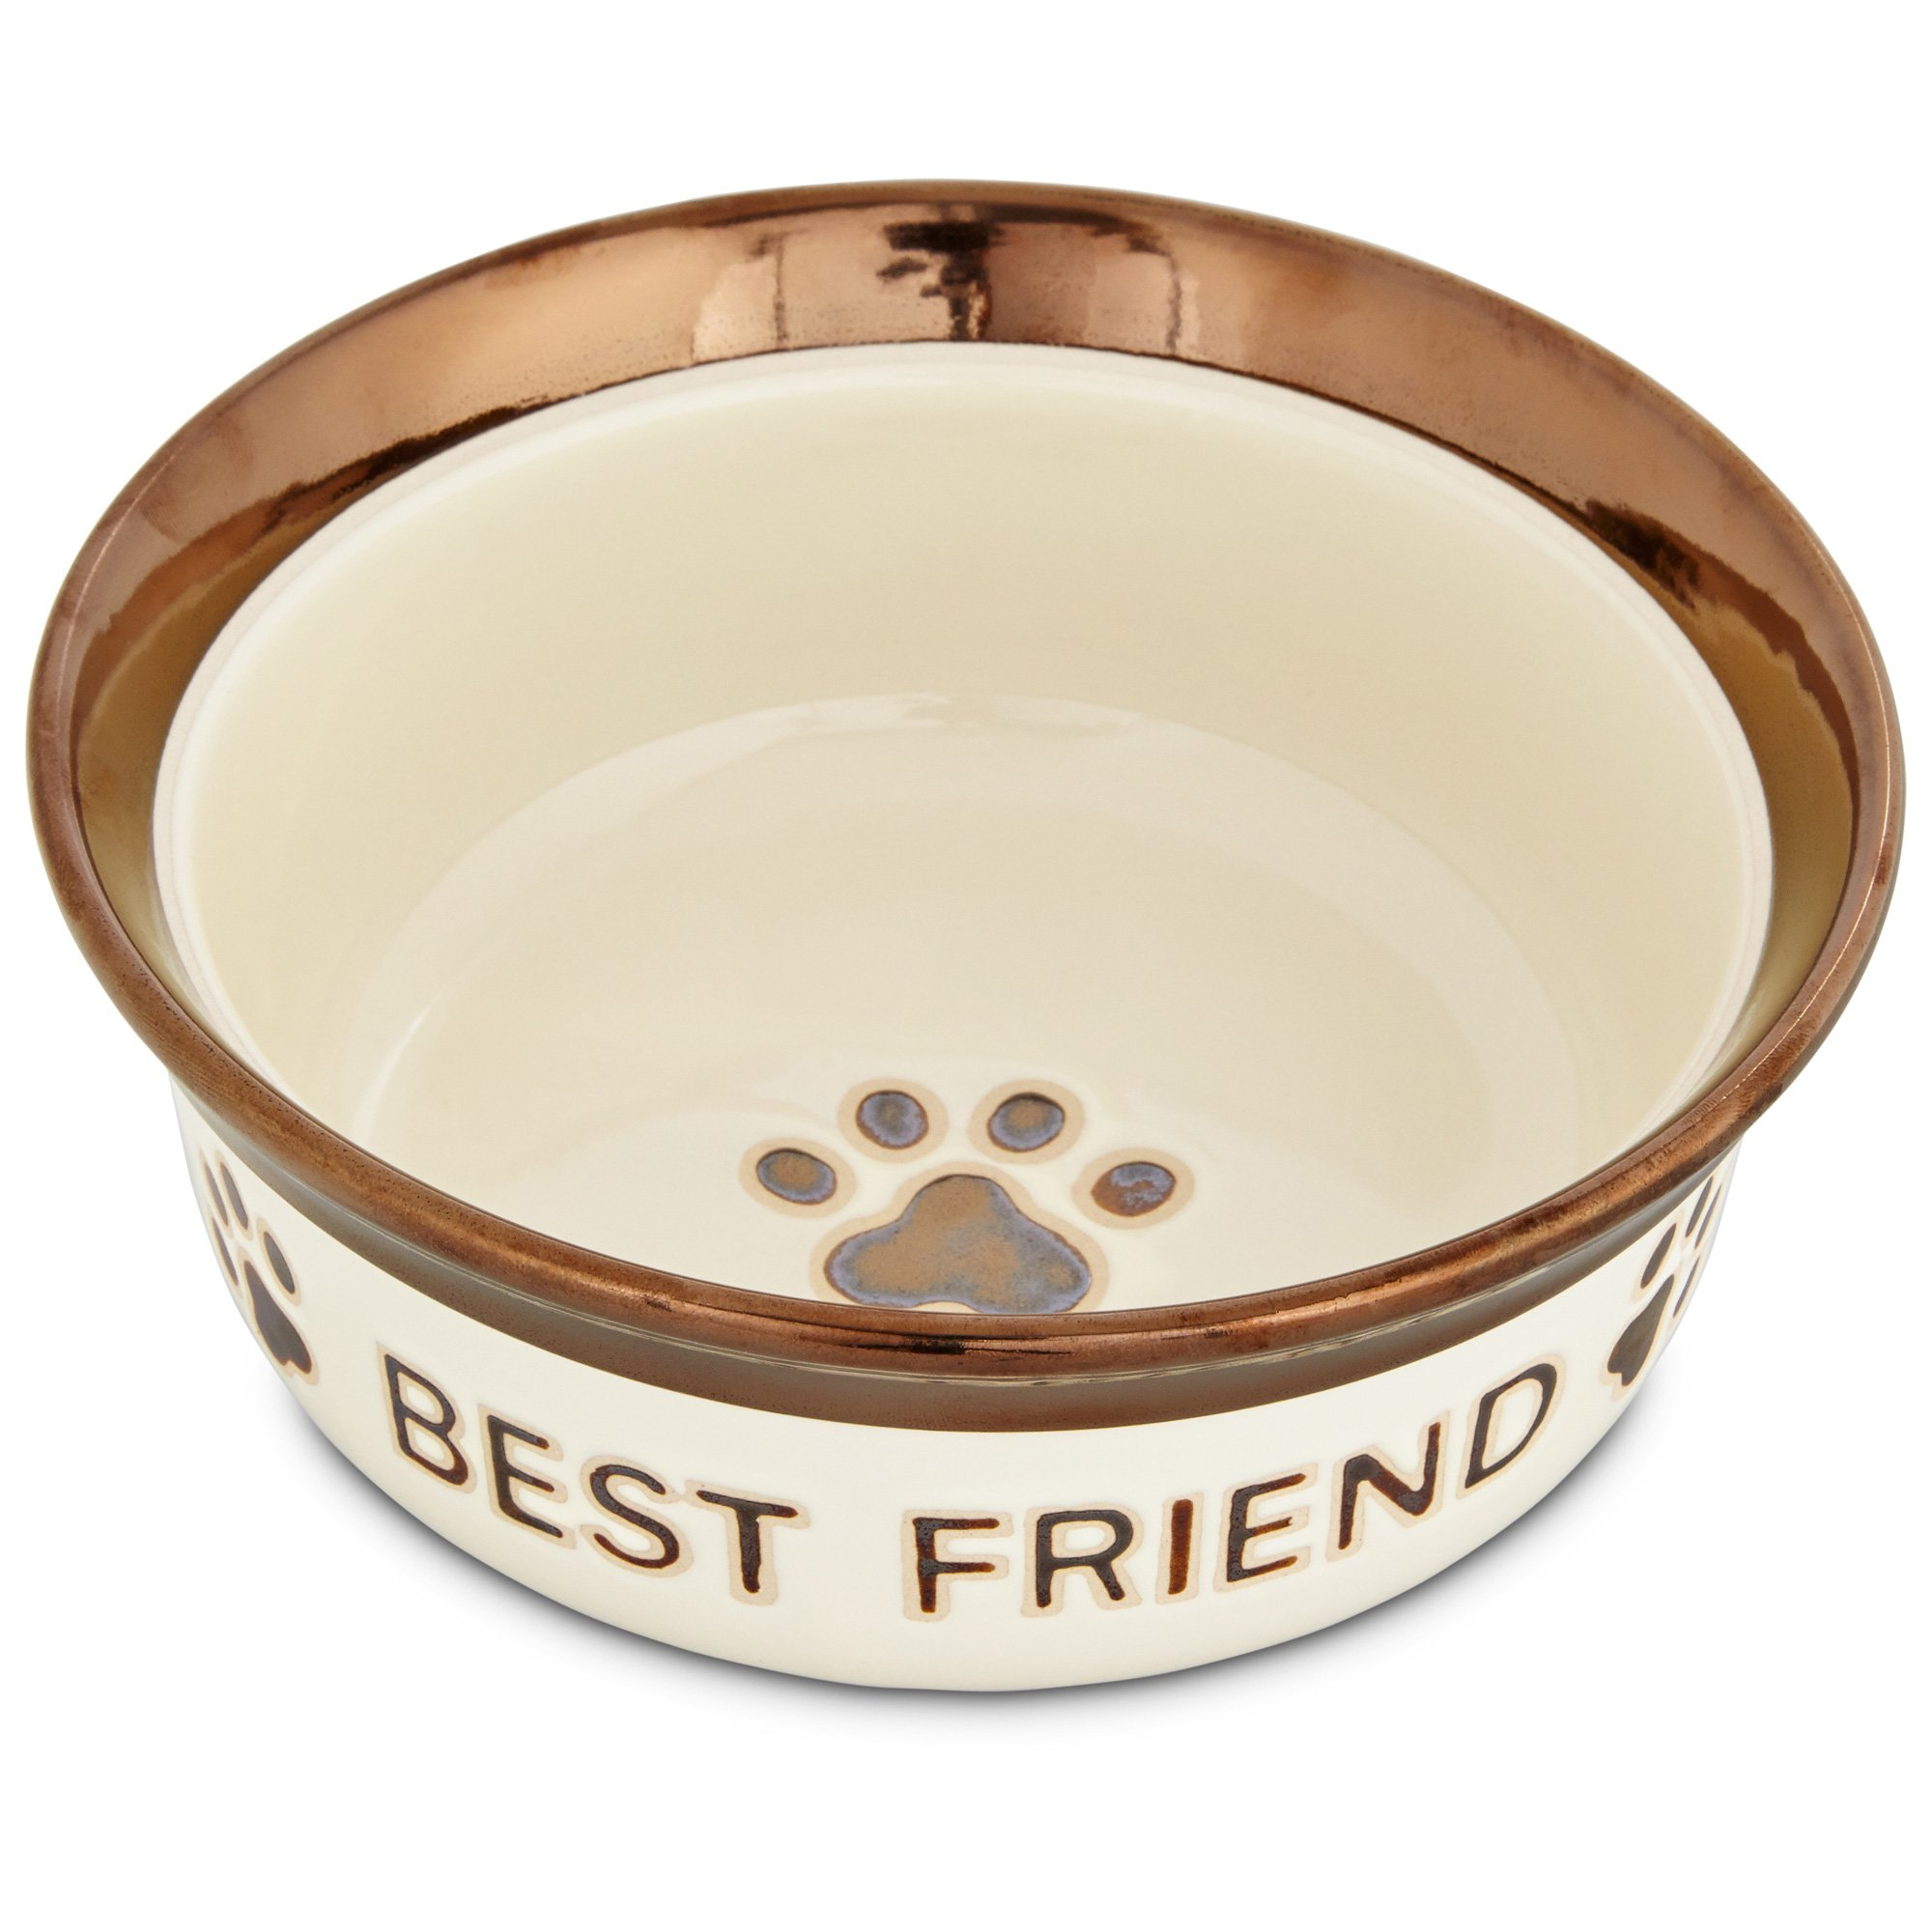 Harmony Best Friend Ceramic Dog Bowl Petco